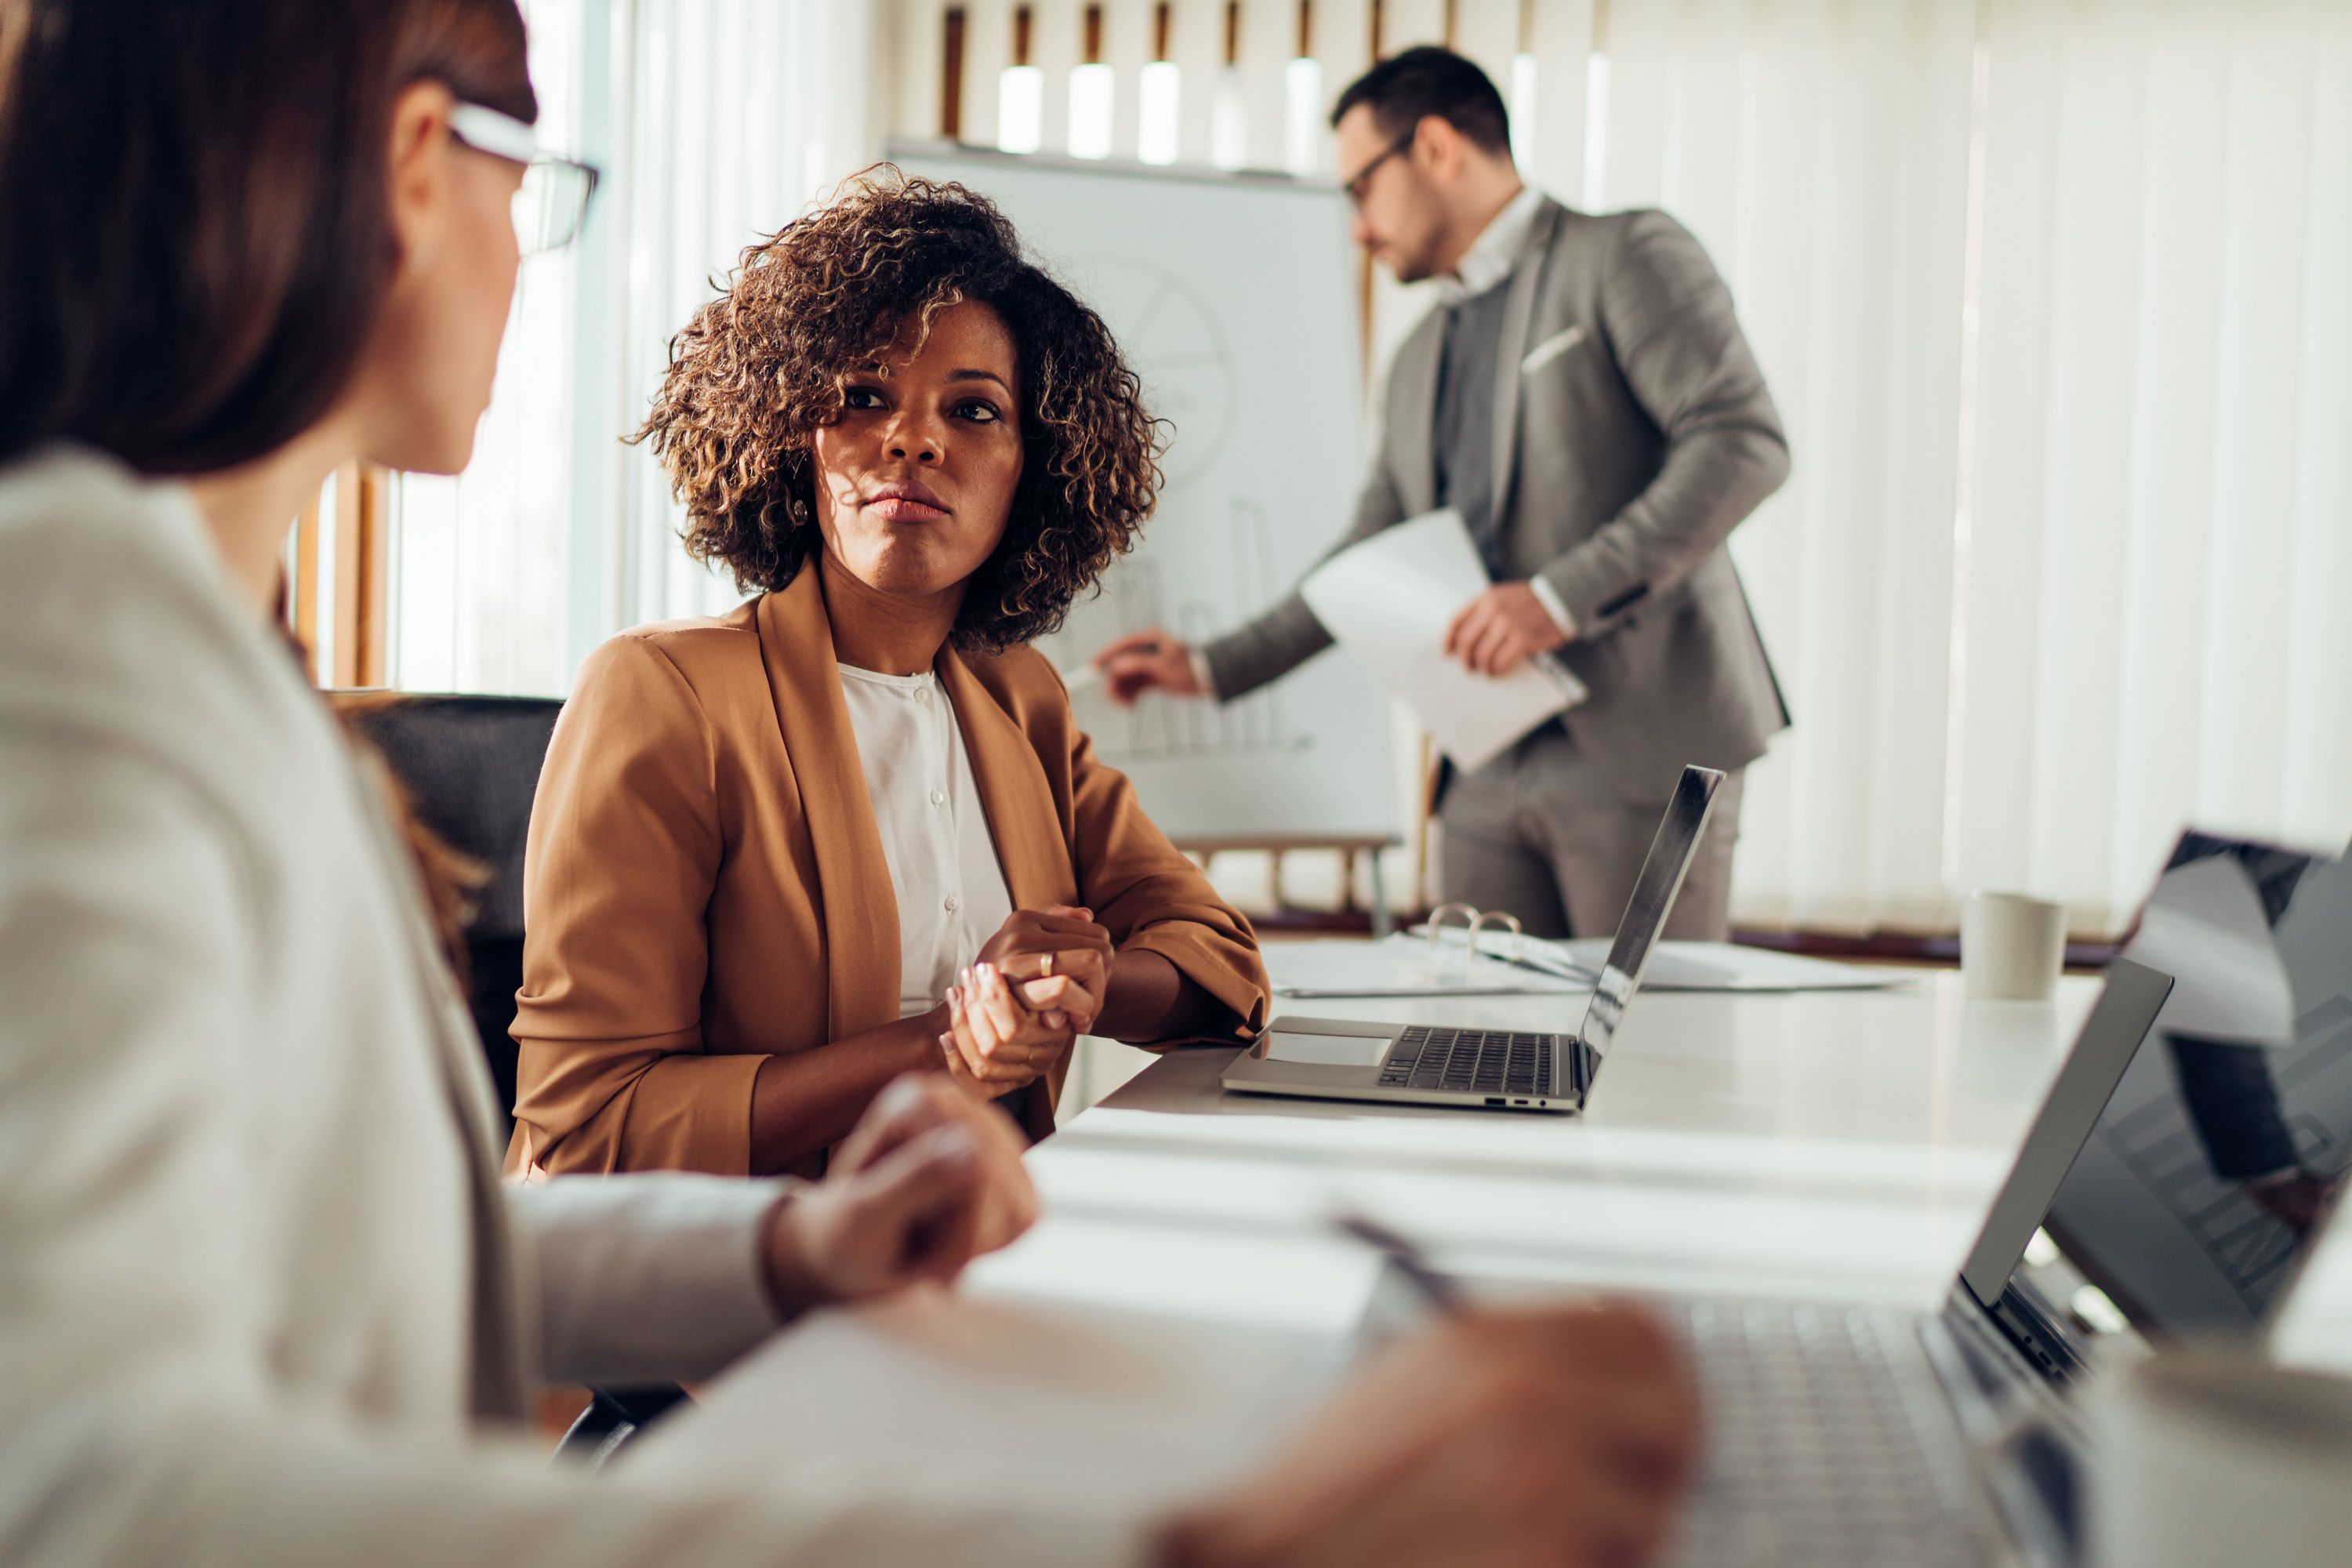 Diverse business woman conversing with another business woman at a boardroom table while a business man writes on a whiteboard in the background